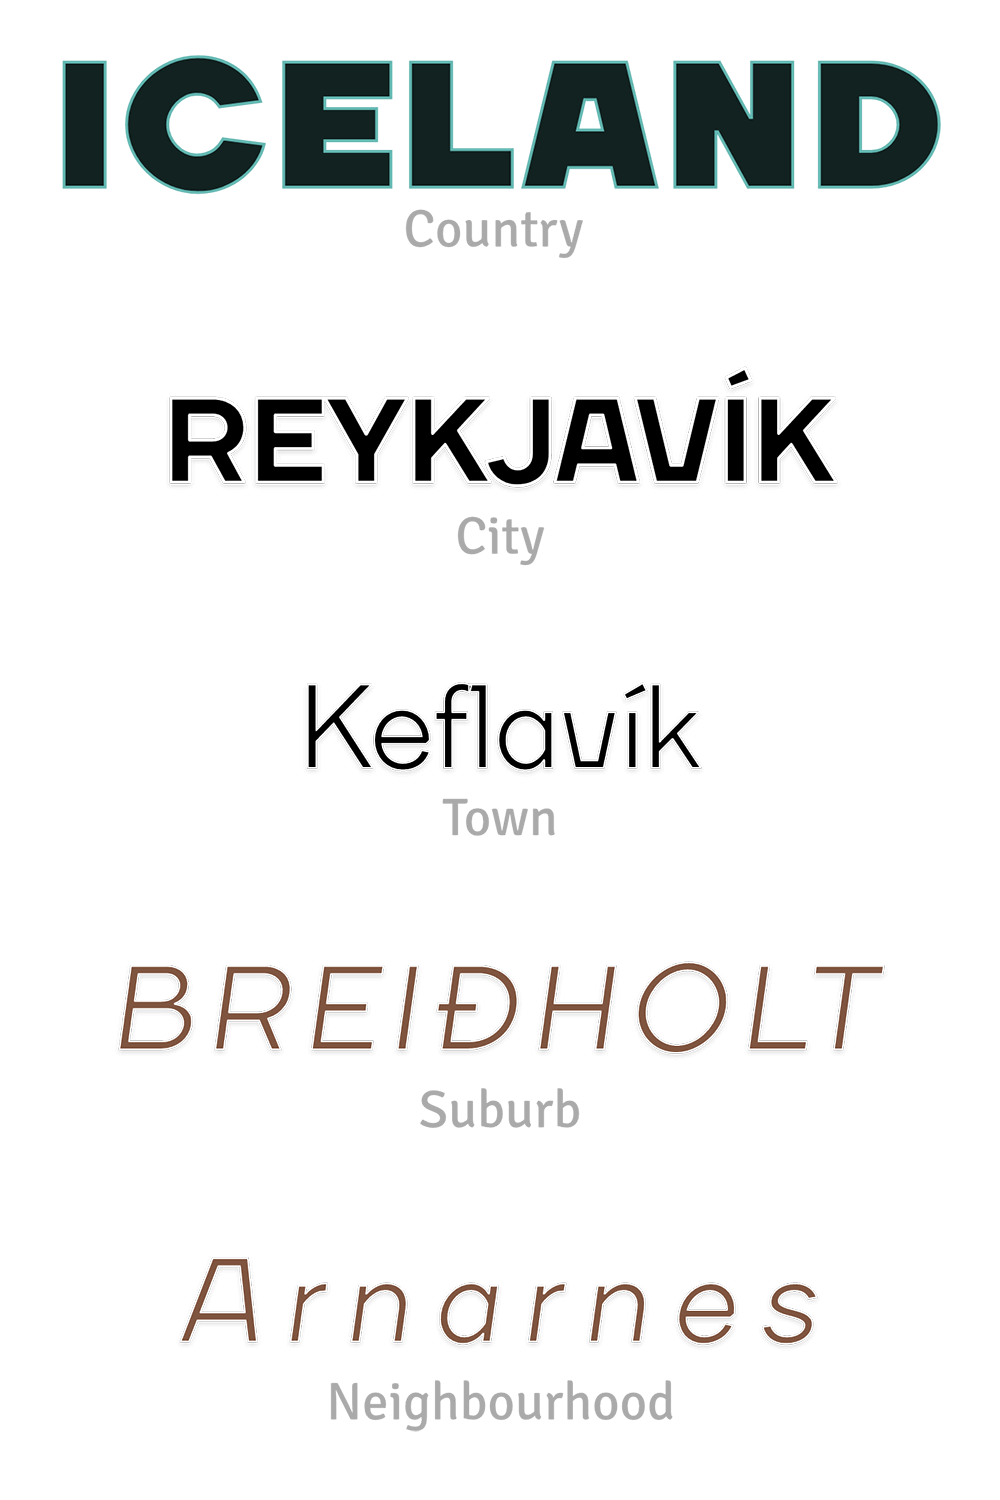 Image showing typographic style and hierarchy of map labels designed by Nimit Shah